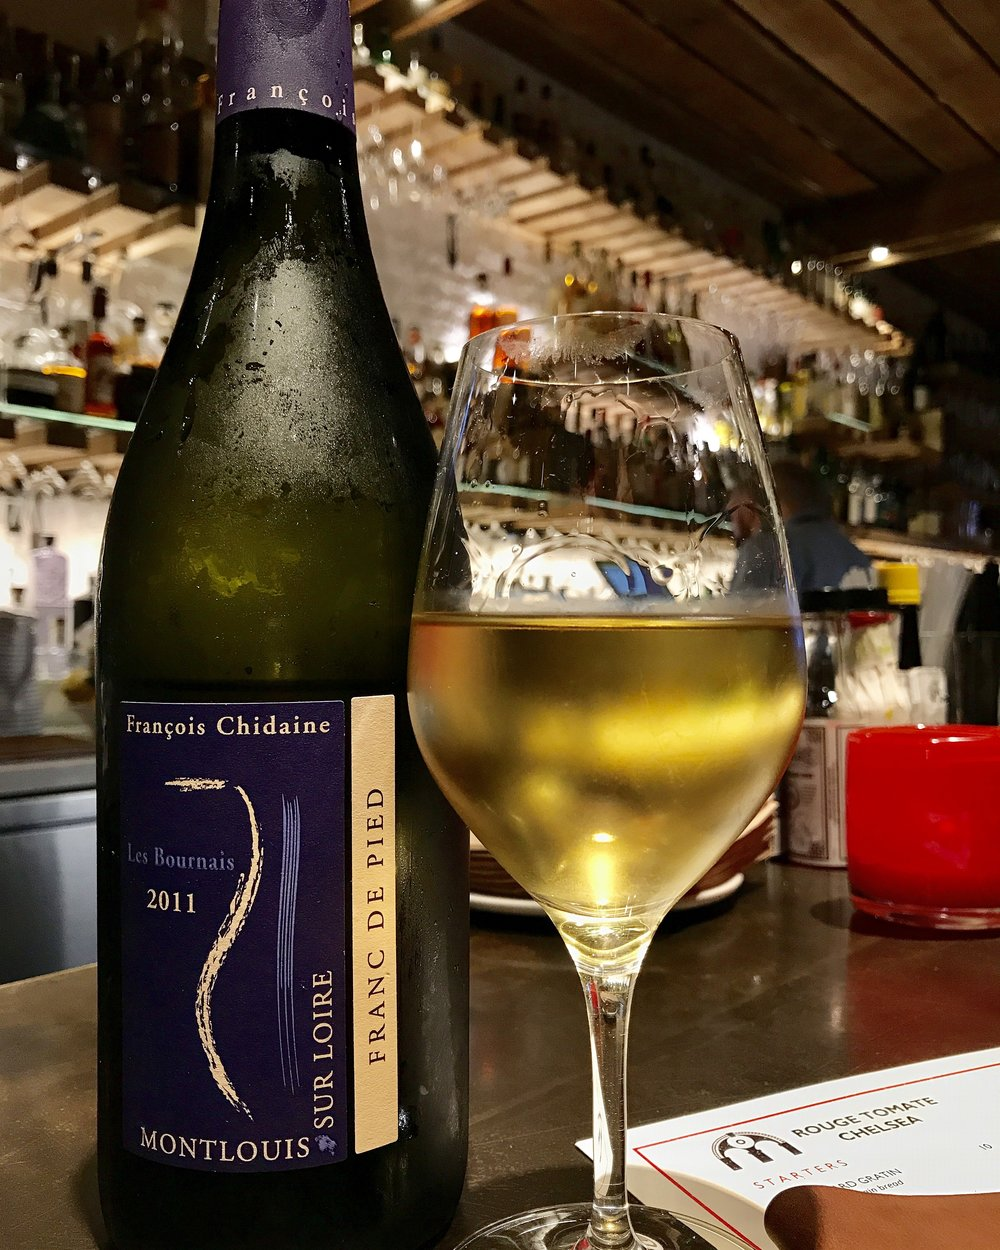 Happiness is Sitting at the bar, sipping this Francois Chidaine Chenin Blanc from the Loire Valley